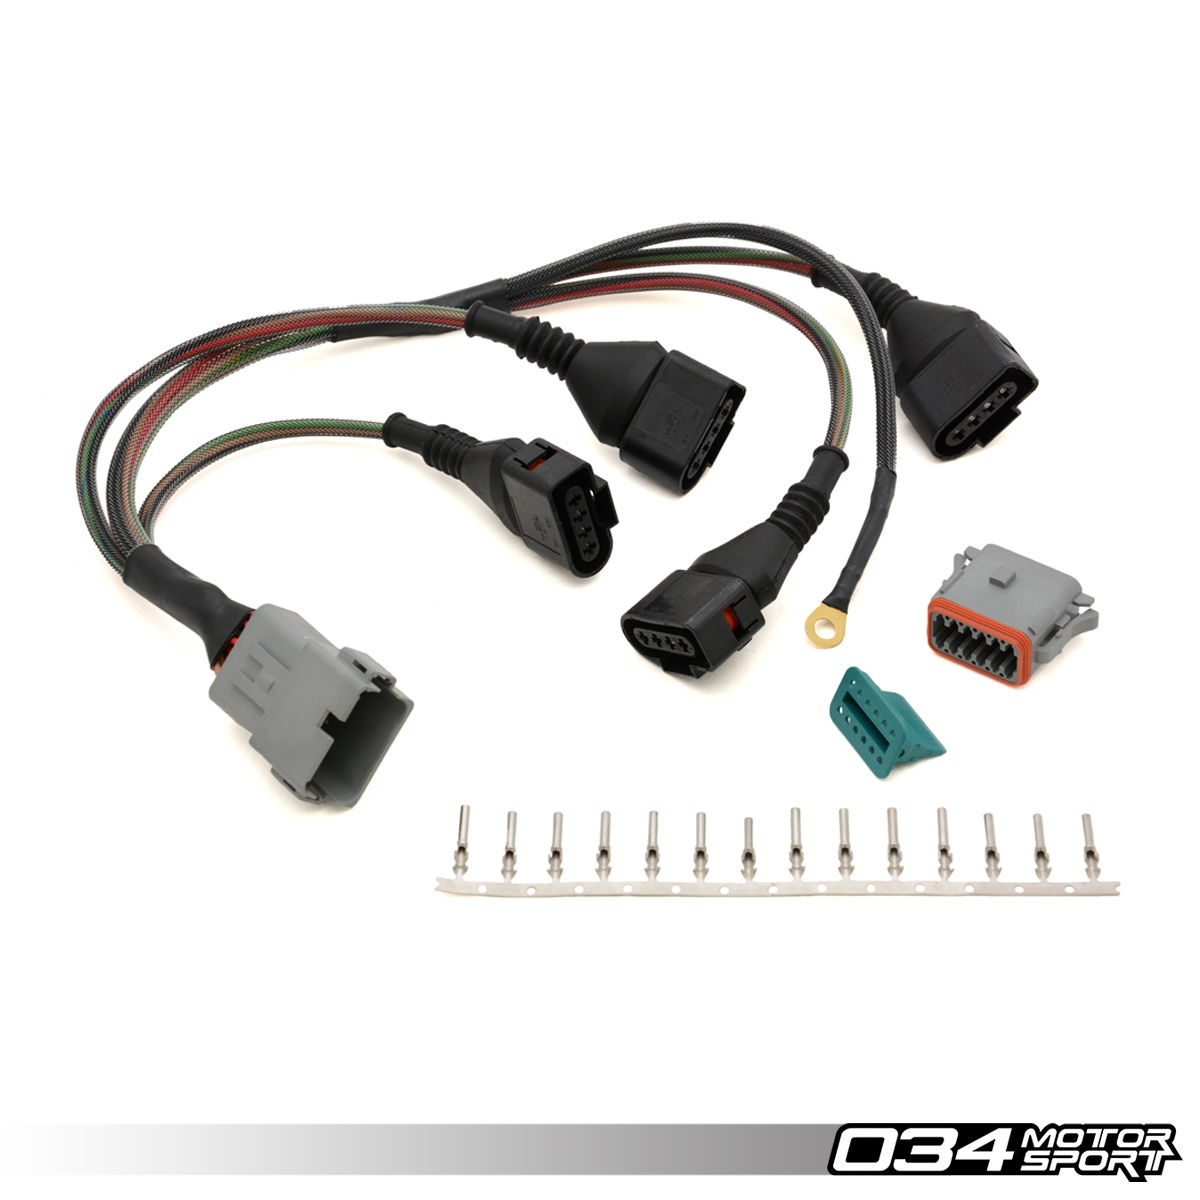 hight resolution of audi wiring harness data diagram schematic 03 audi a4 1 8t quattro engine wiring harness